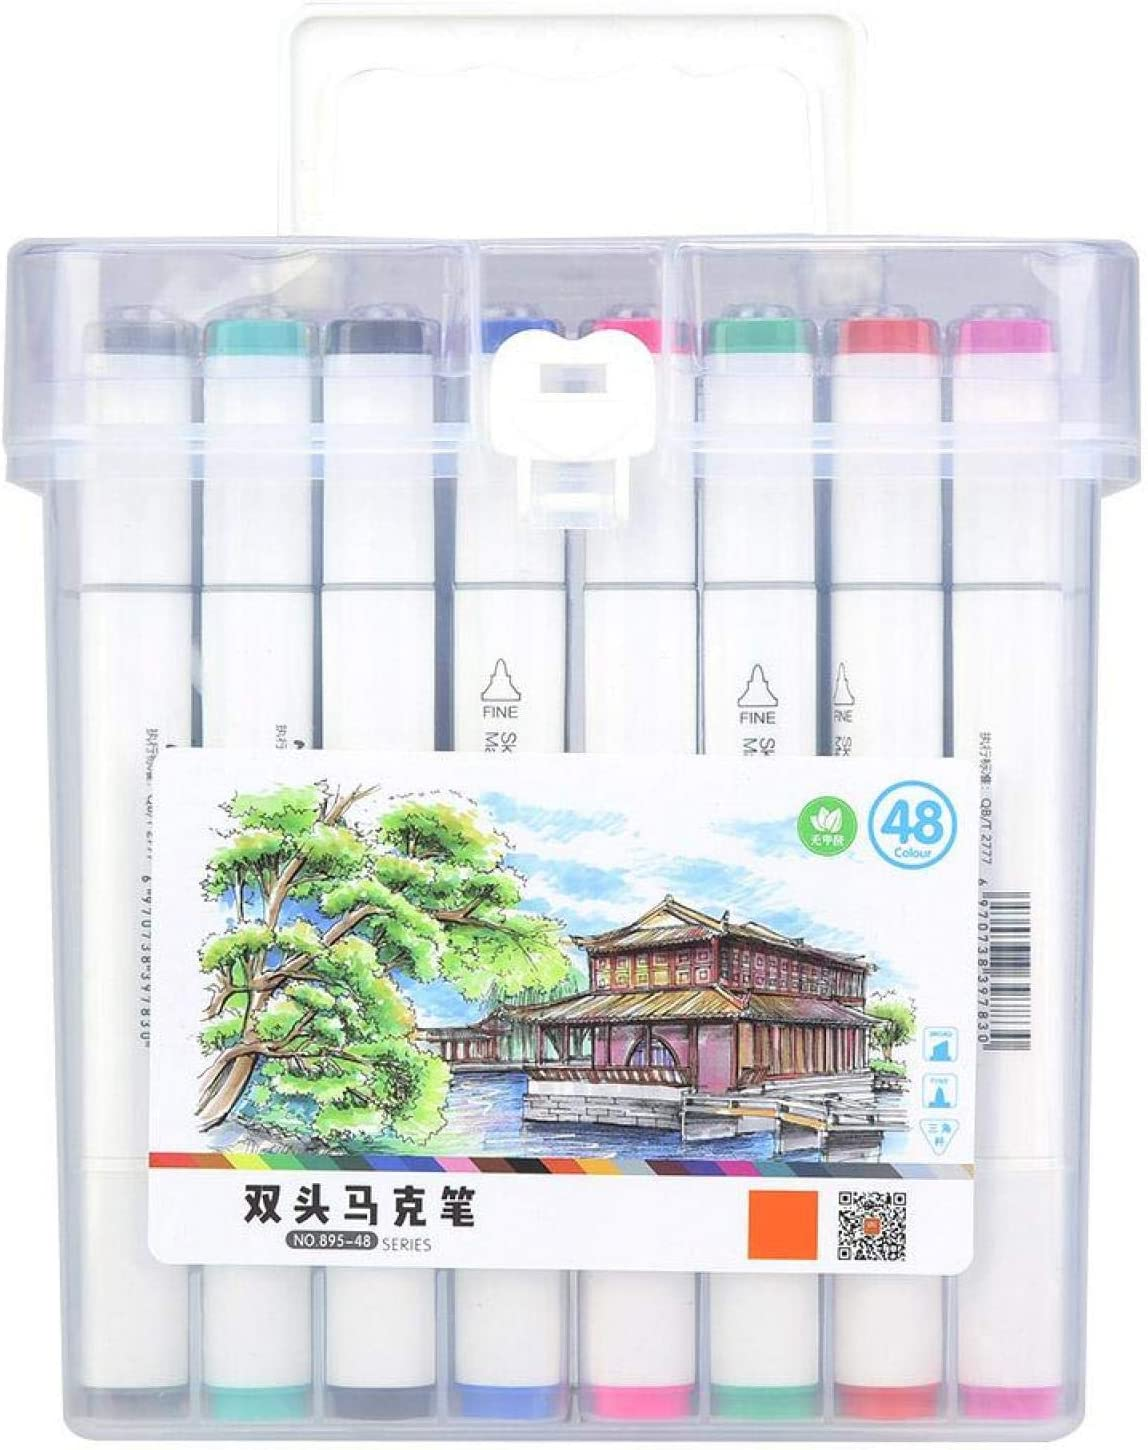 Art Supplies Alcohol Dual Head Tips for Store Markers Drawing Pen Max 67% OFF Set